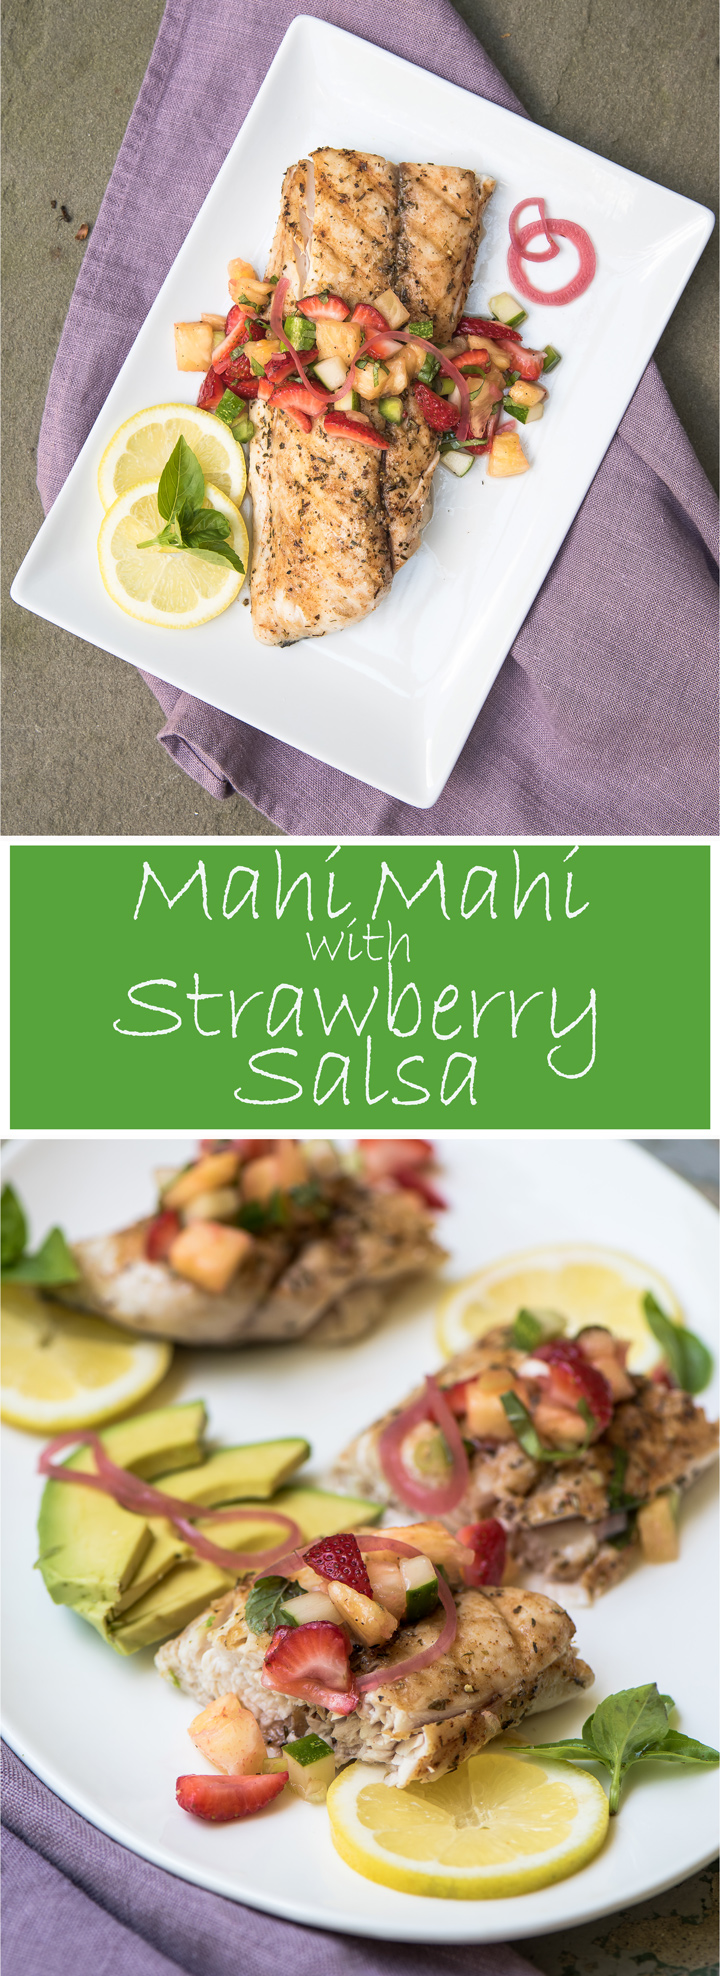 Grilled Mahi Mahi with Strawberry Pineapple Salsa. Recipe for grilled mahi mahi and strawberry pineapple salsa. This is an easy dinner to make during the week and an impressive choice for entertaining.